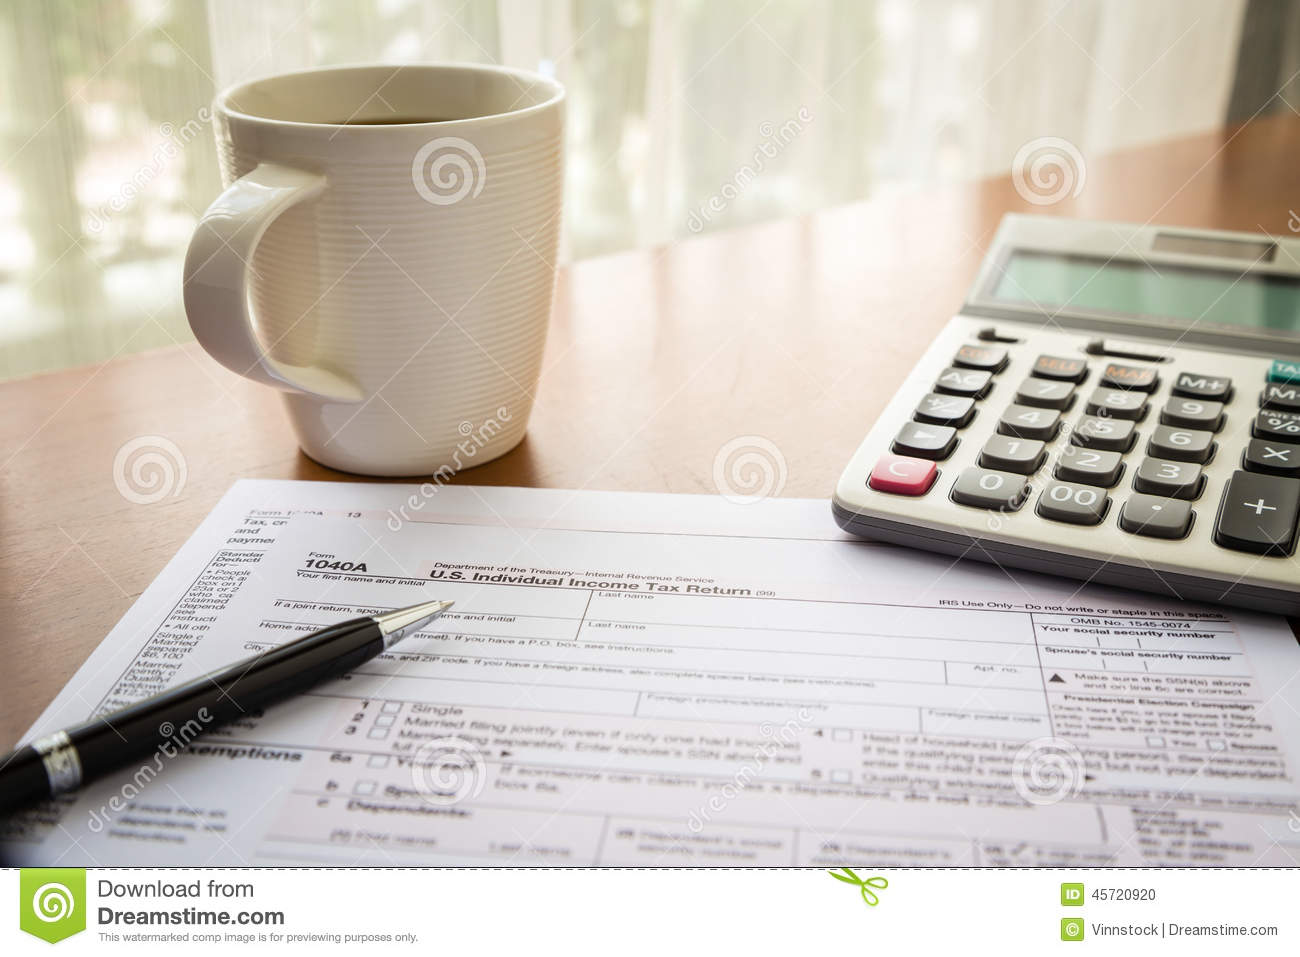 Form 1040a u s individual income tax return stock photo for 1040a tax table 2014